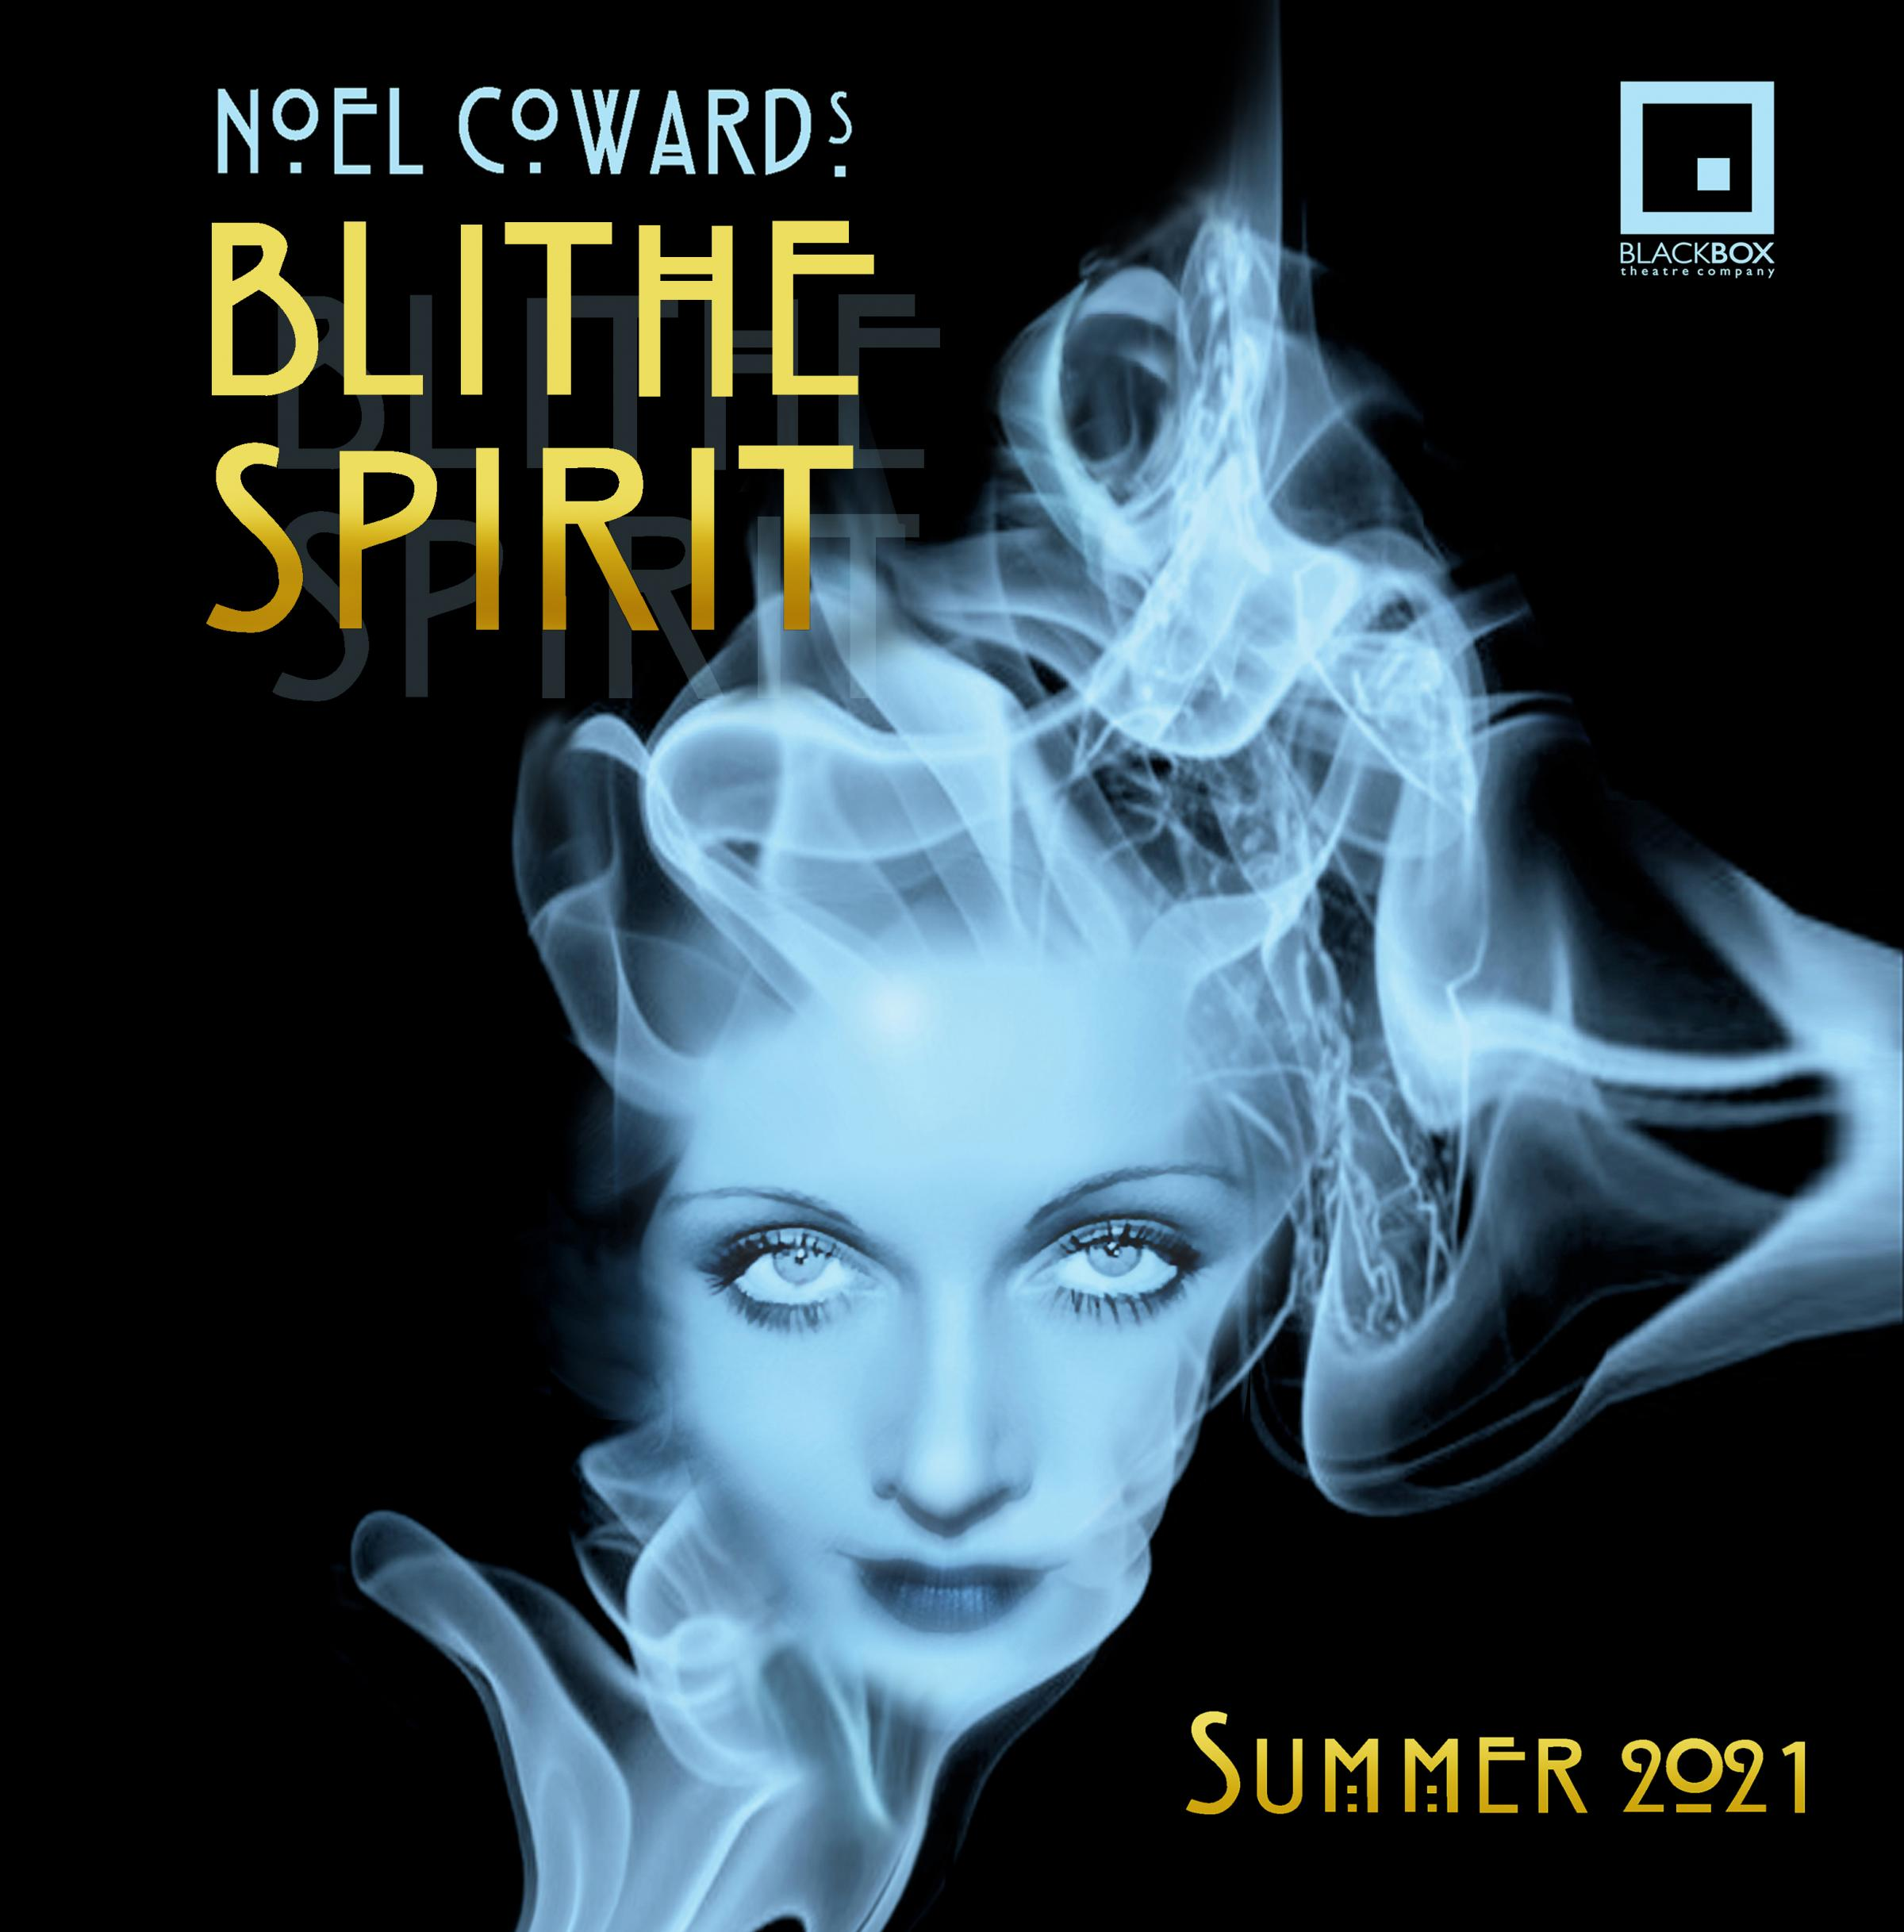 Blithe Spirit - open air theatre at Beech Hurst Park